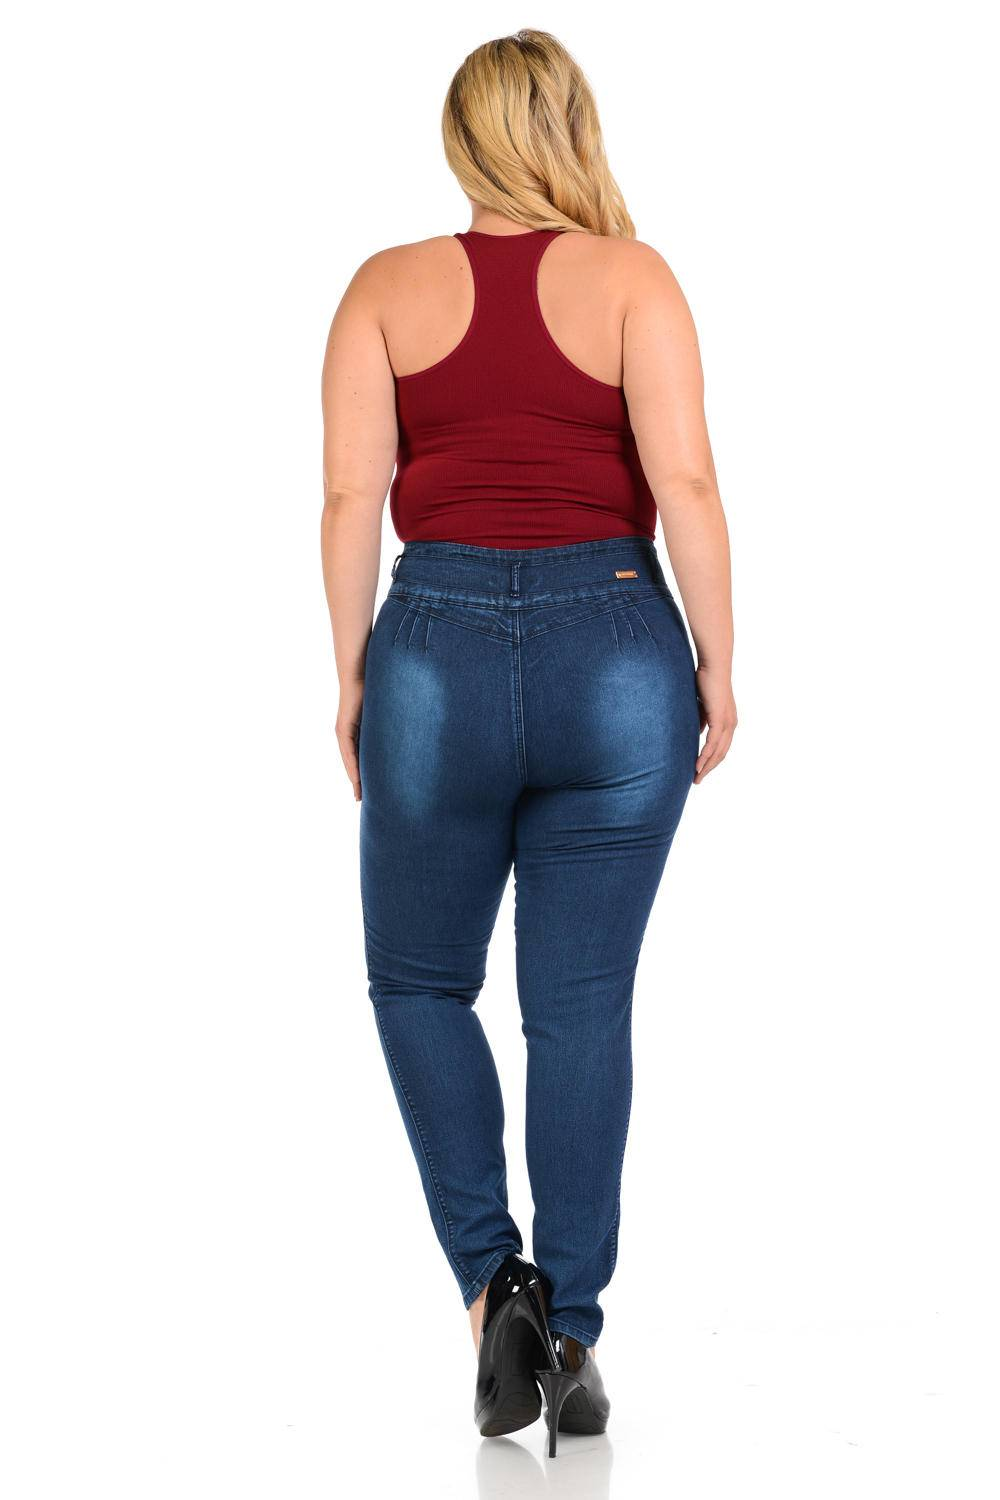 Diamante Missy Size High Waist Push Up Jeans